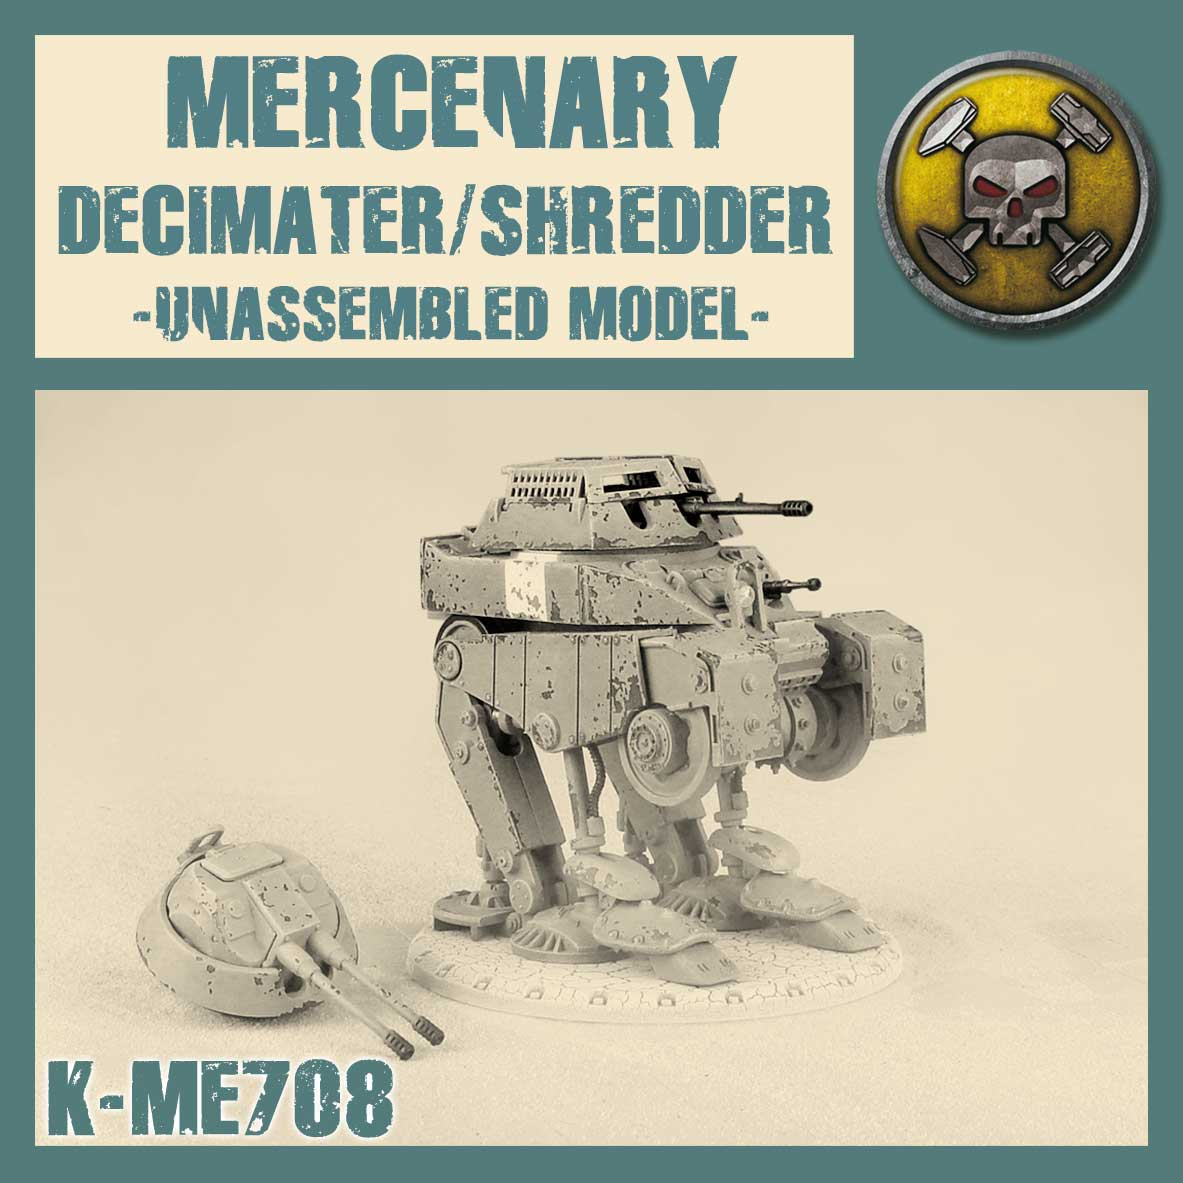 Najemny Decimater/Shredder Kit